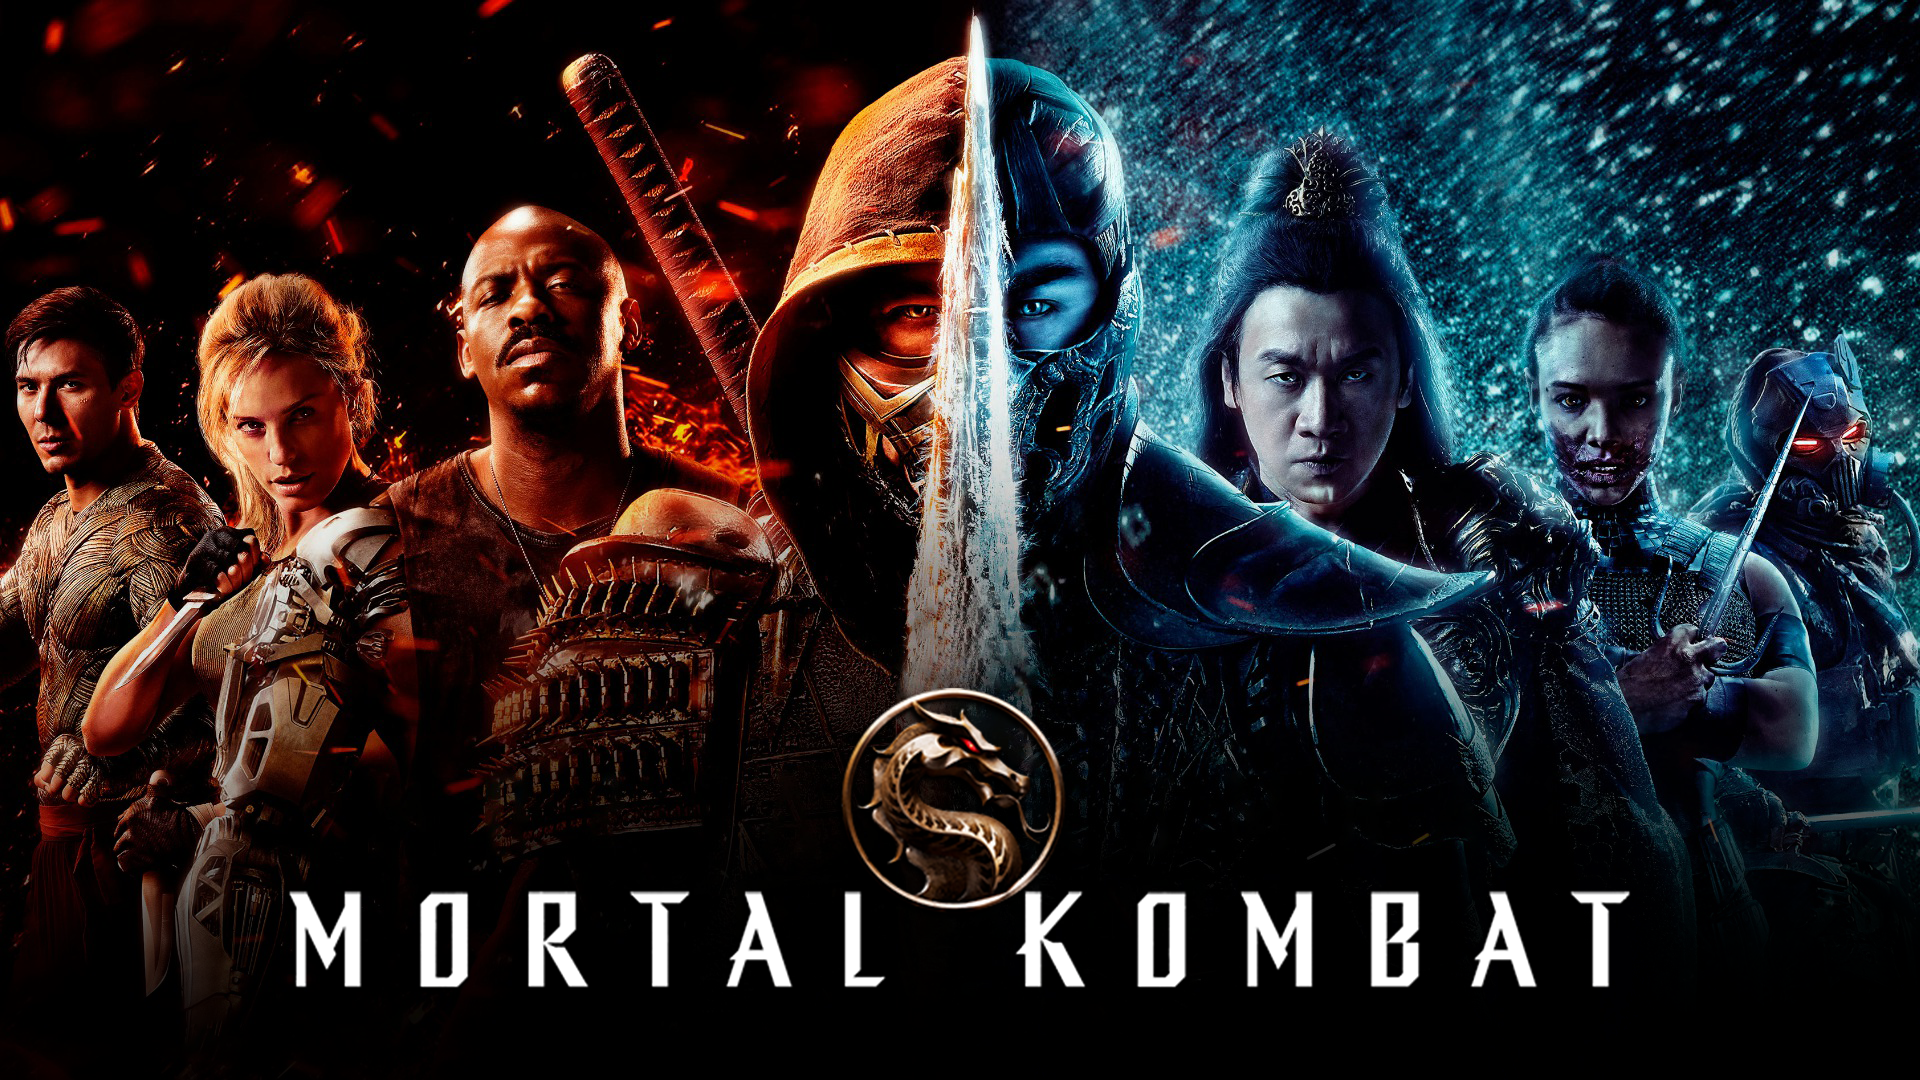 Mortal Kombat is faithful to the game series but somehow mostly boring